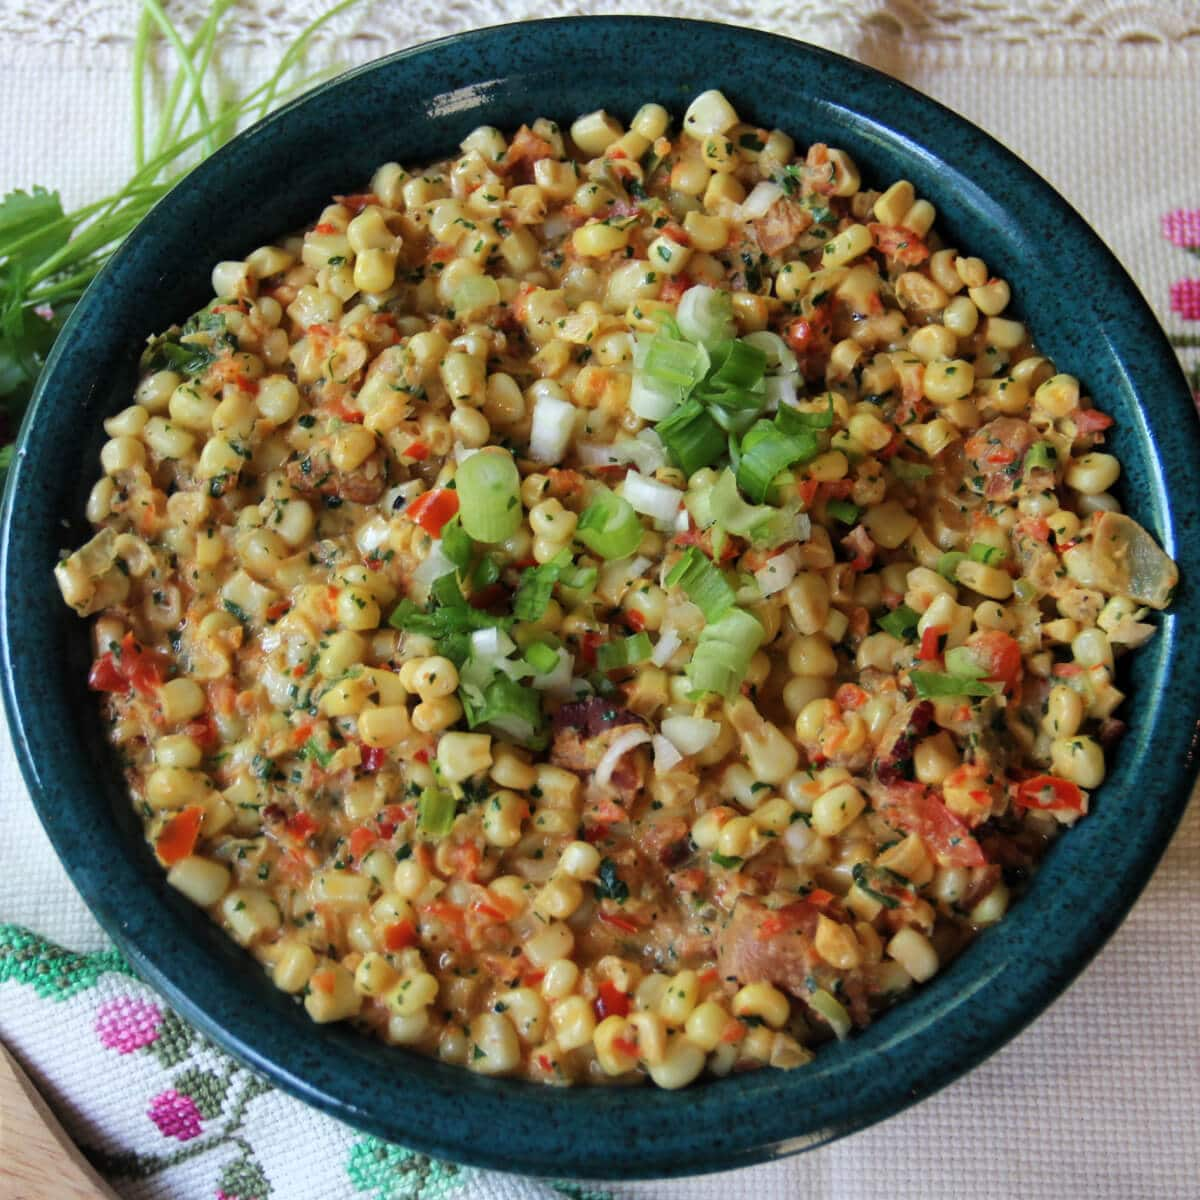 Jalapeno creamed corn with bacon, scallions, and cilantro is a great side dish for taco night, burgers on the grill, or slow-roasted pork. This cream style corn is a little spicy and everyone loves it!